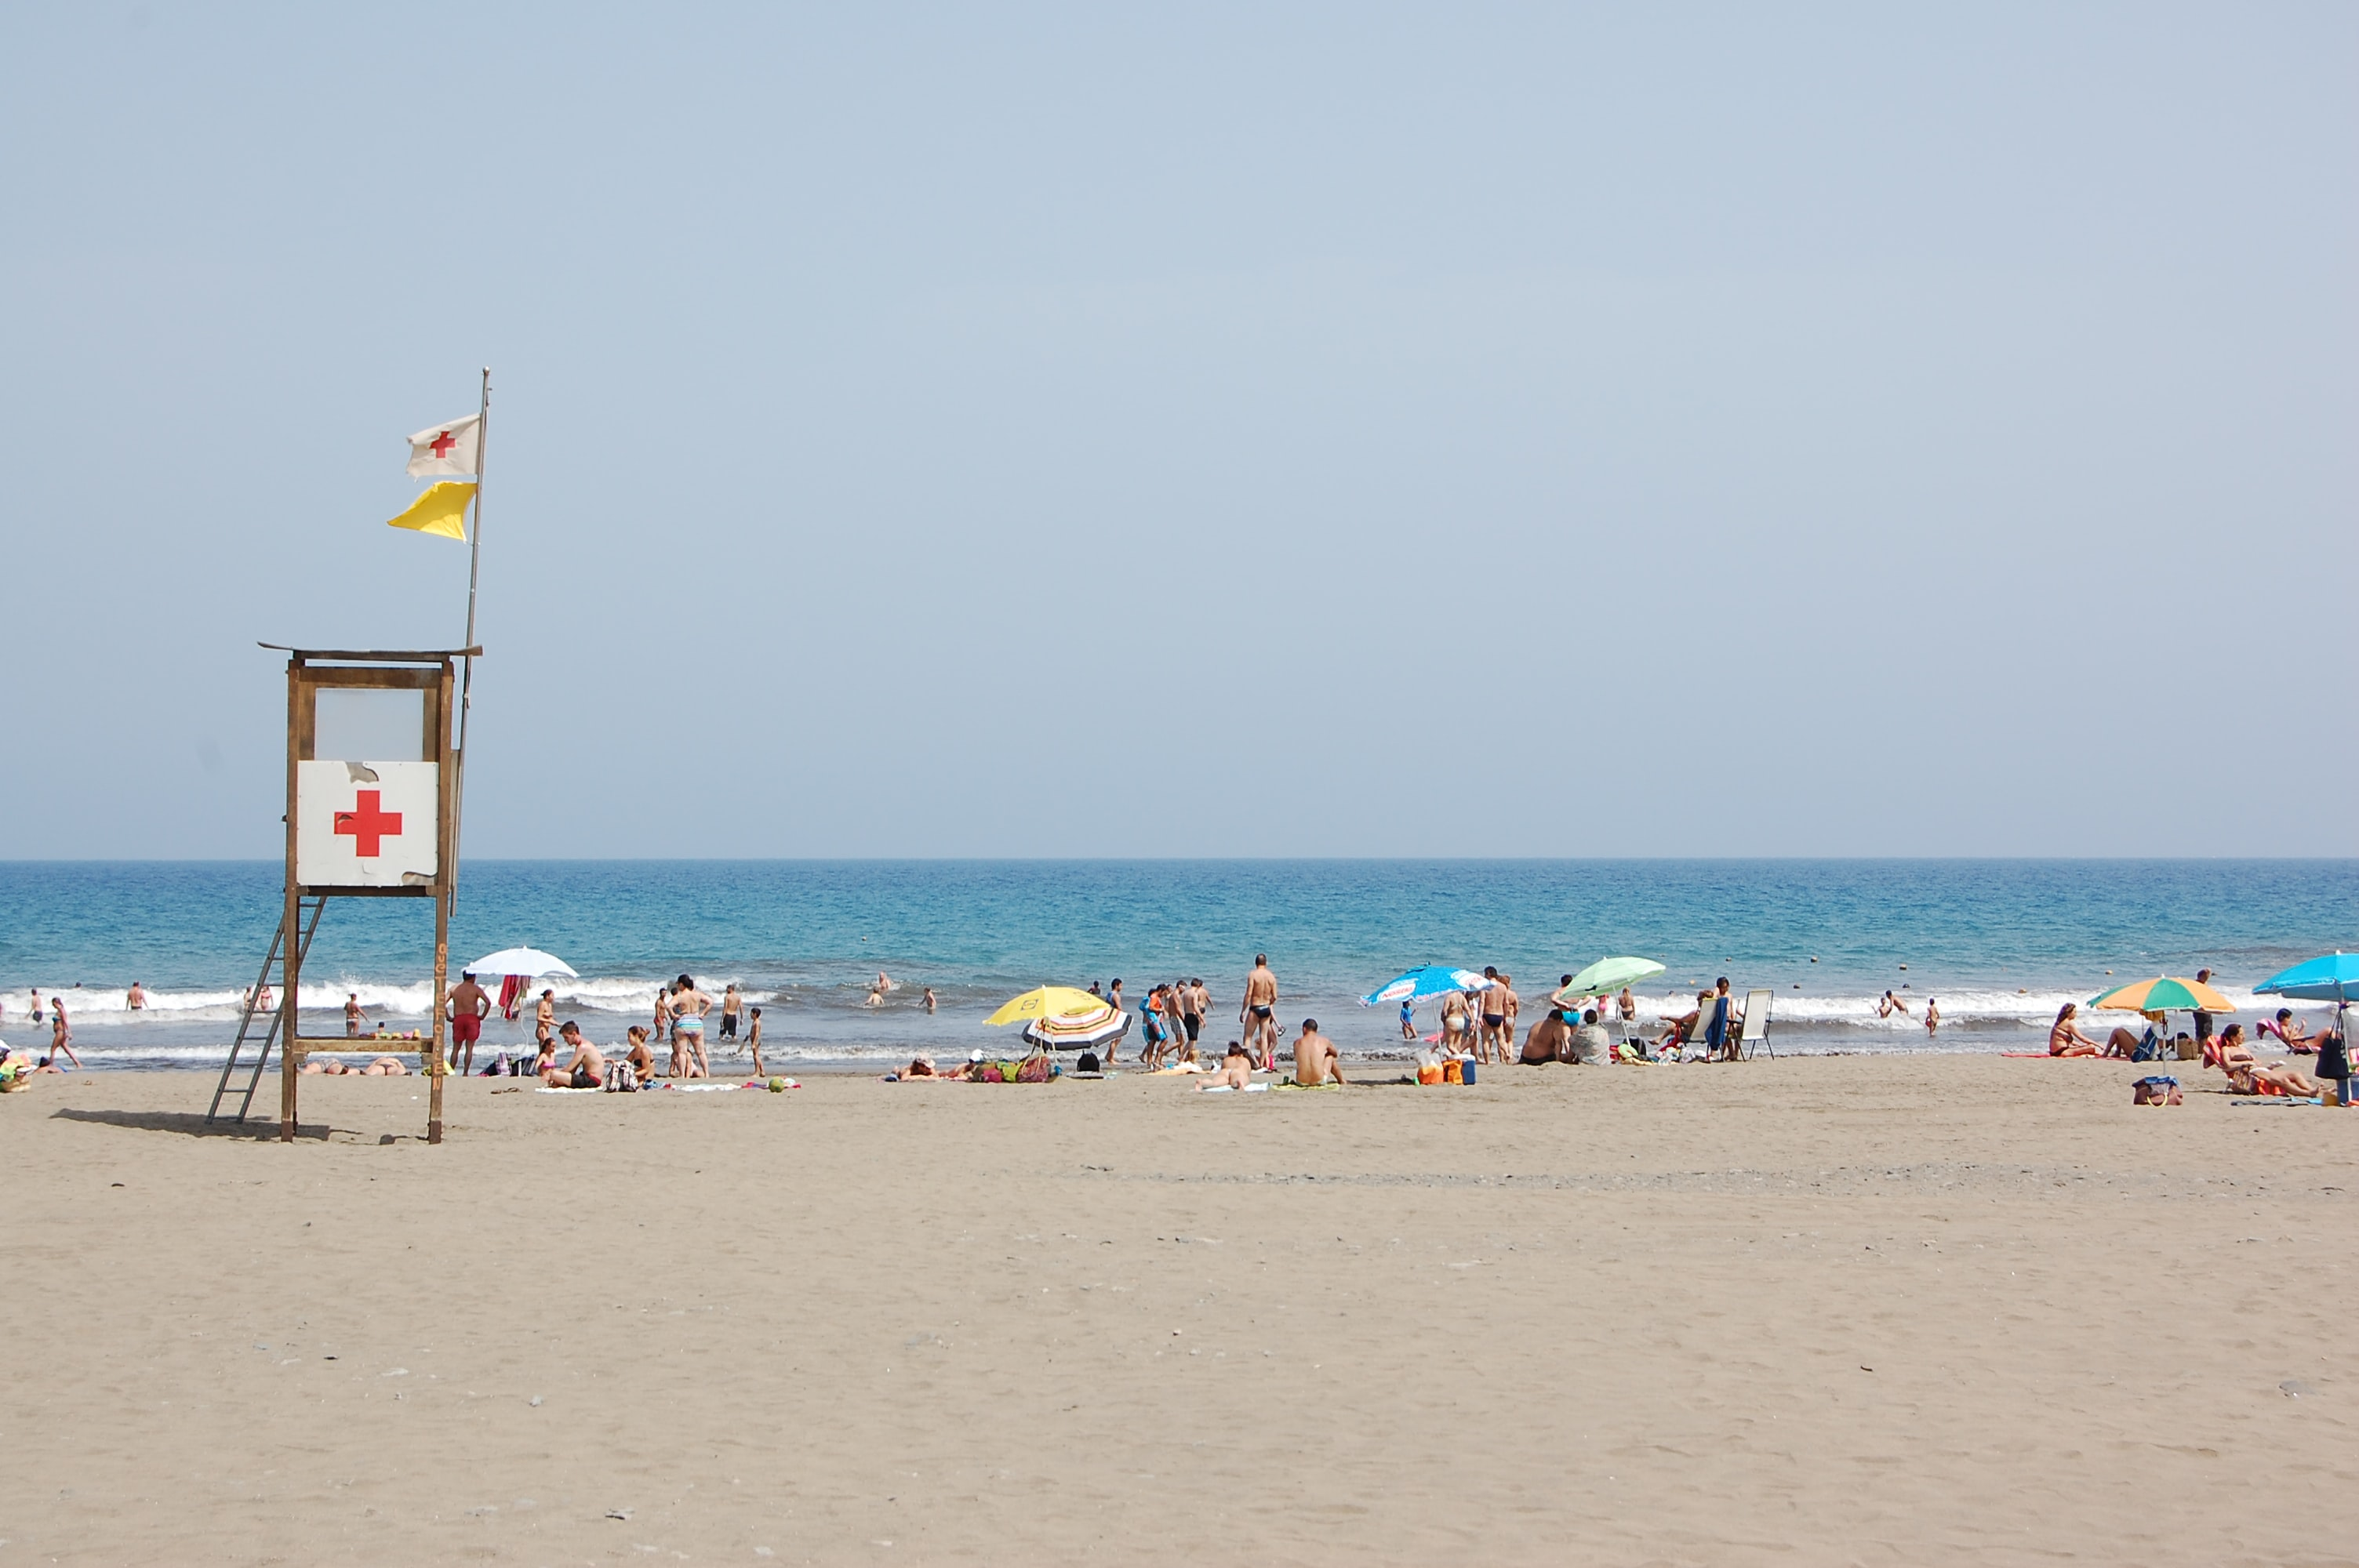 Lifeguard tower on crowdy sand beach in Gran Canaria